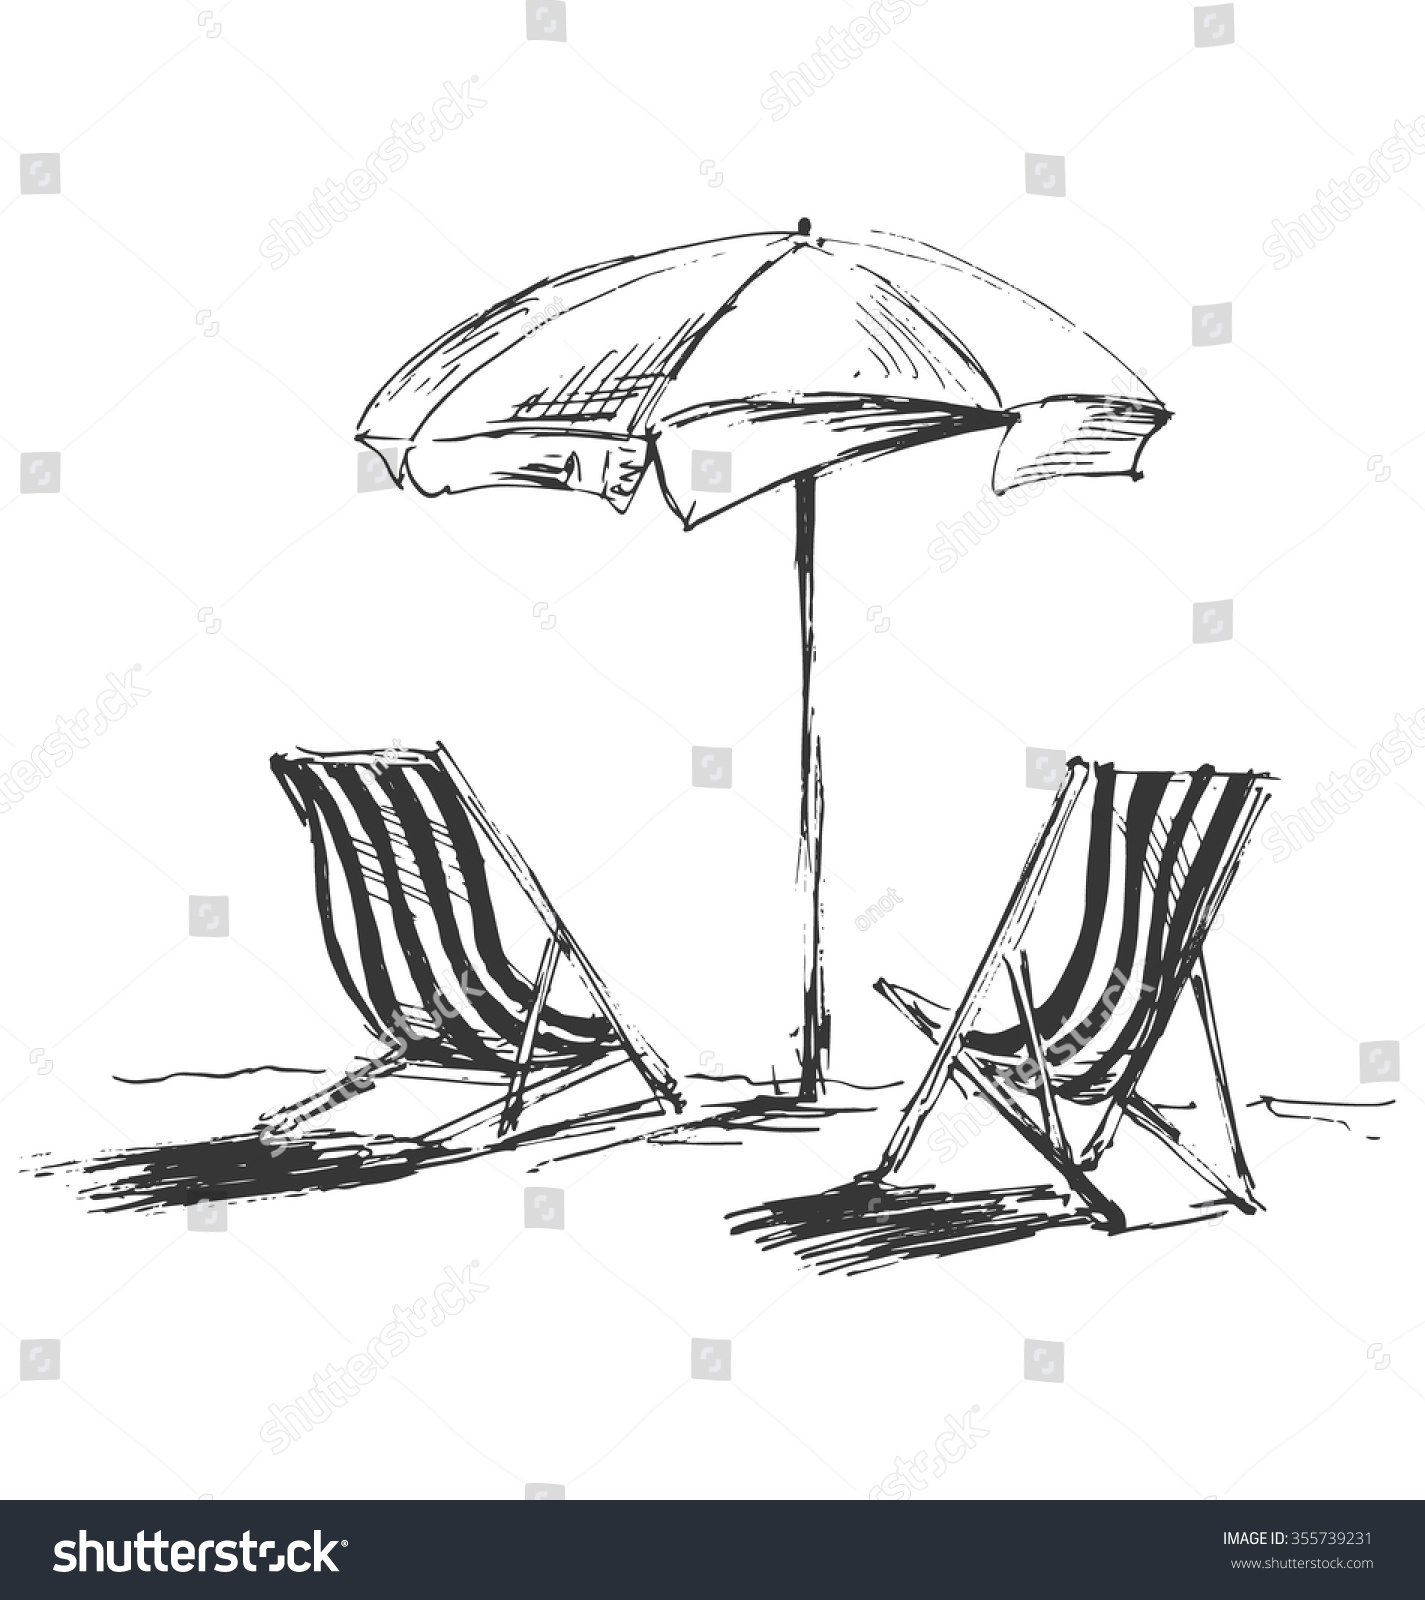 Beach chair and umbrella sketch - Hand Sketch With Beach Chairs And Parasols